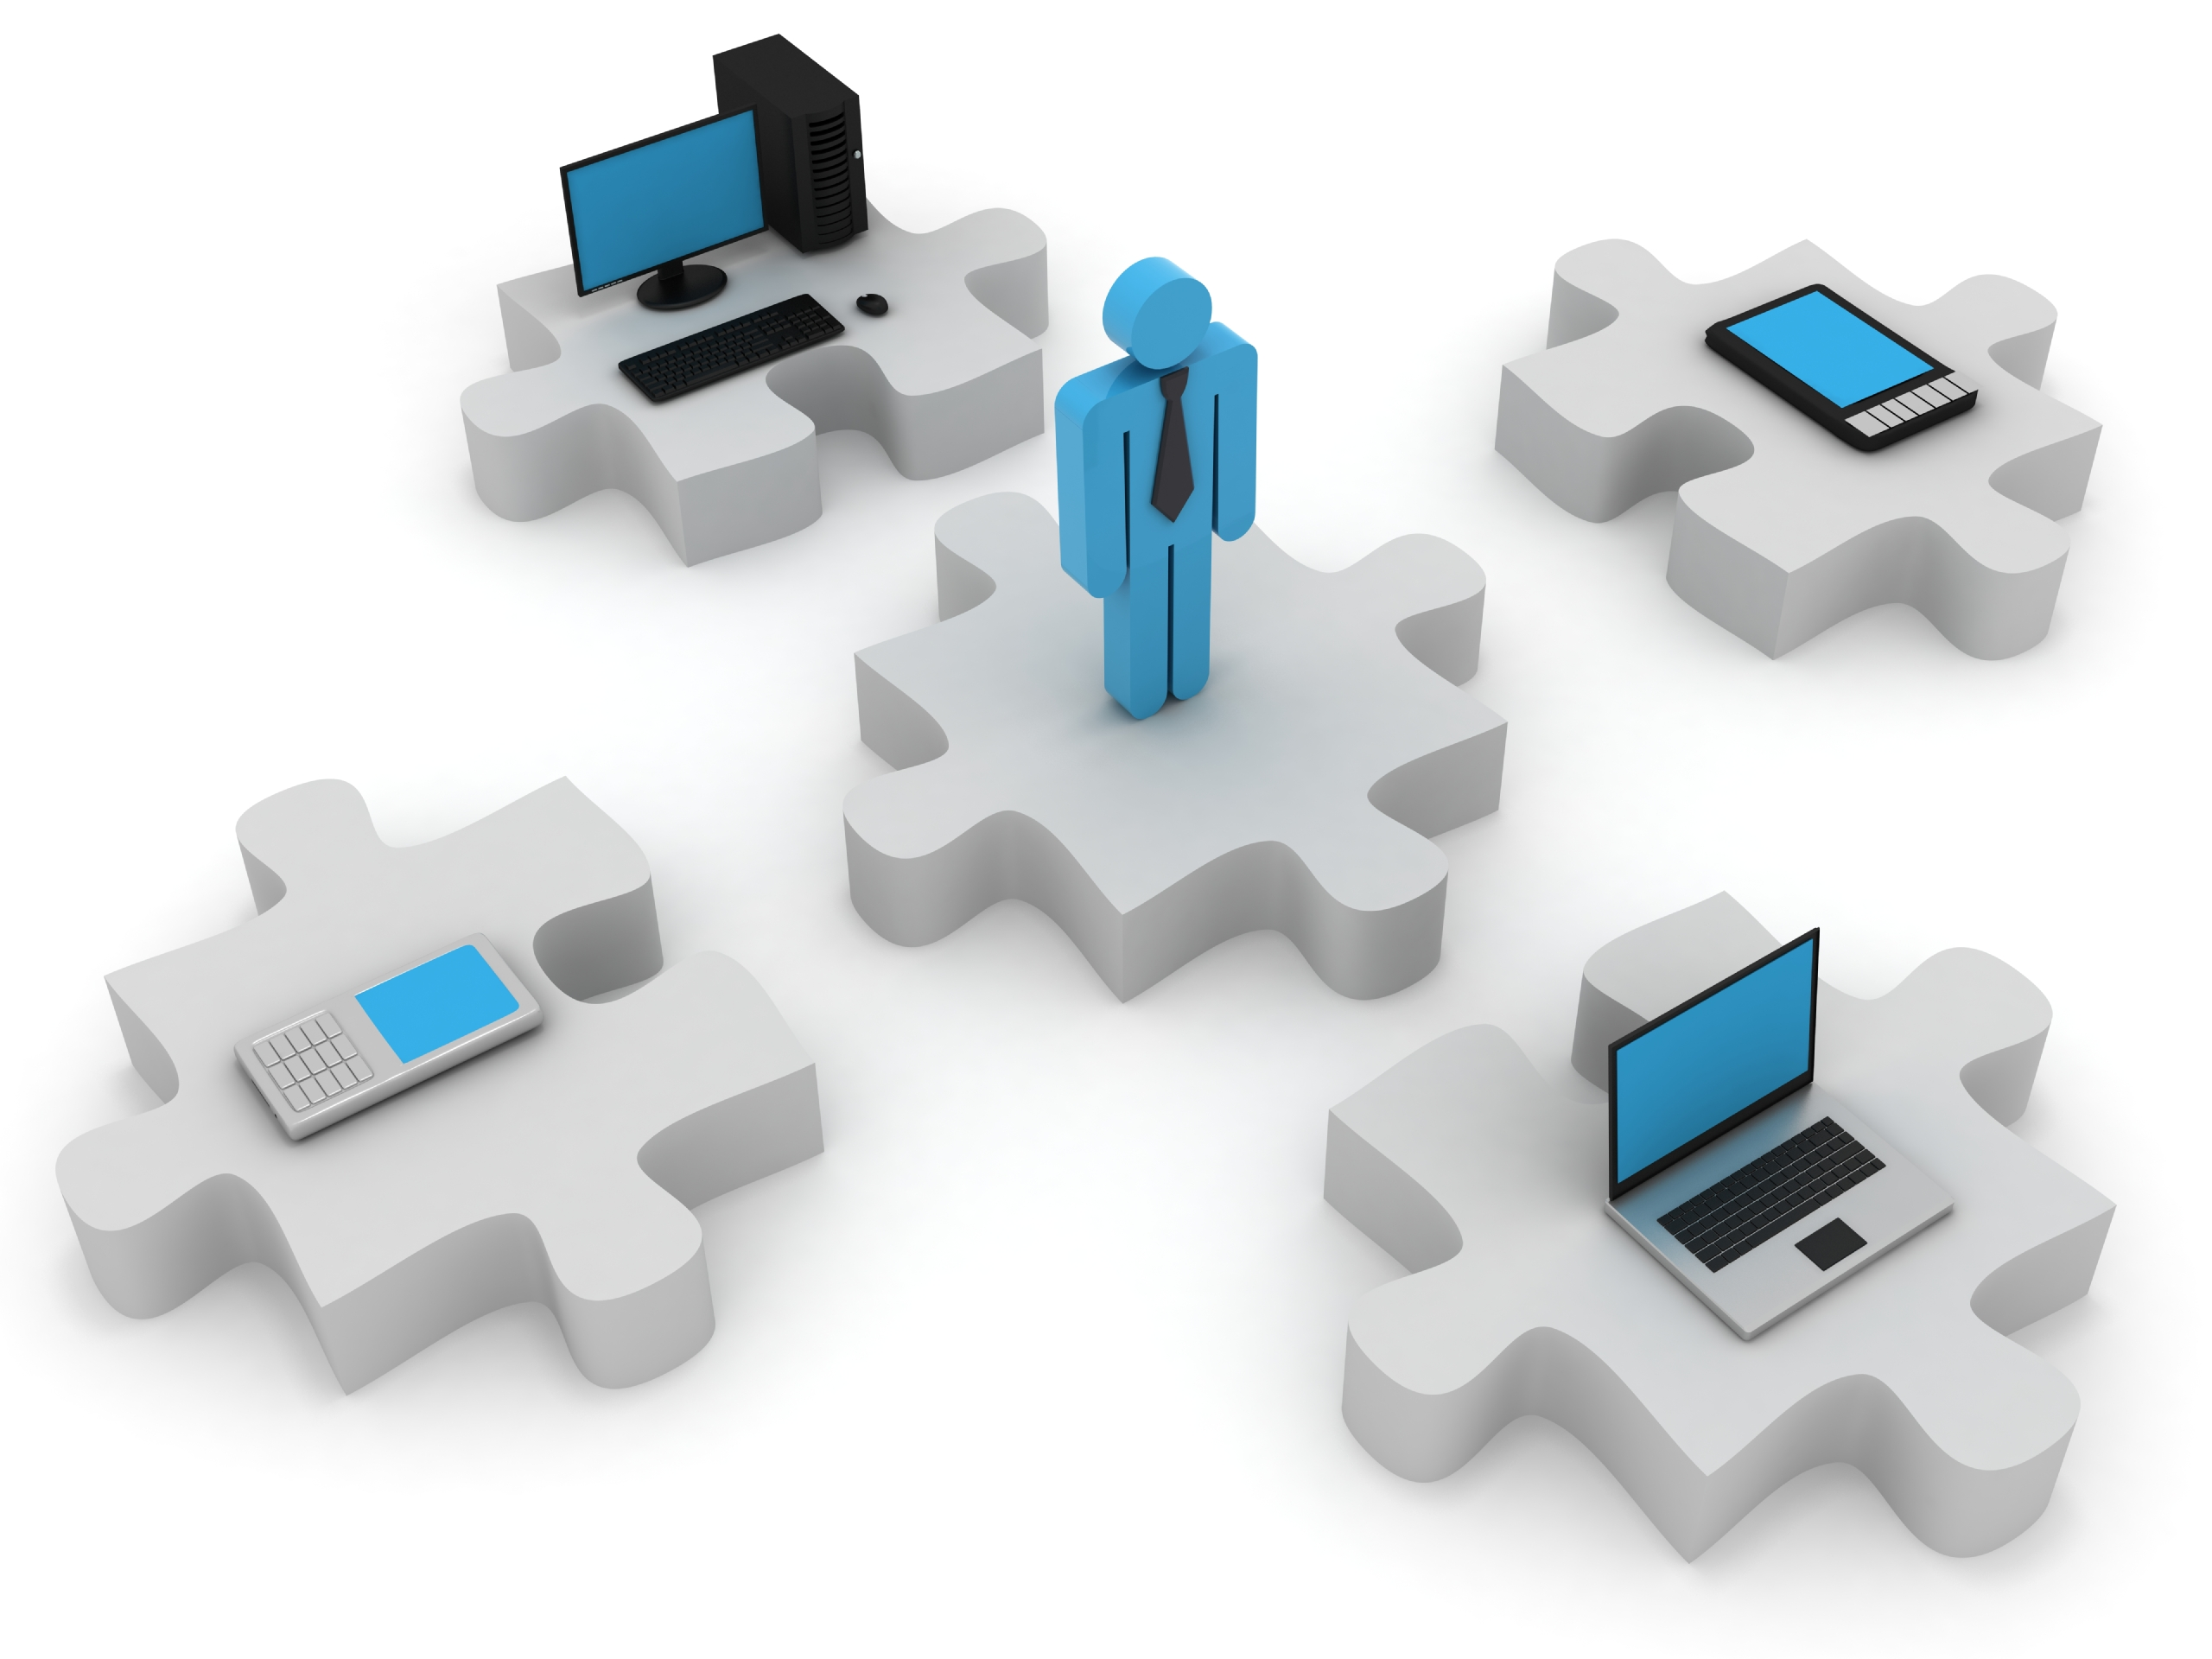 Puzzle-Pieces-Mobile-Solution-Desktop-PC